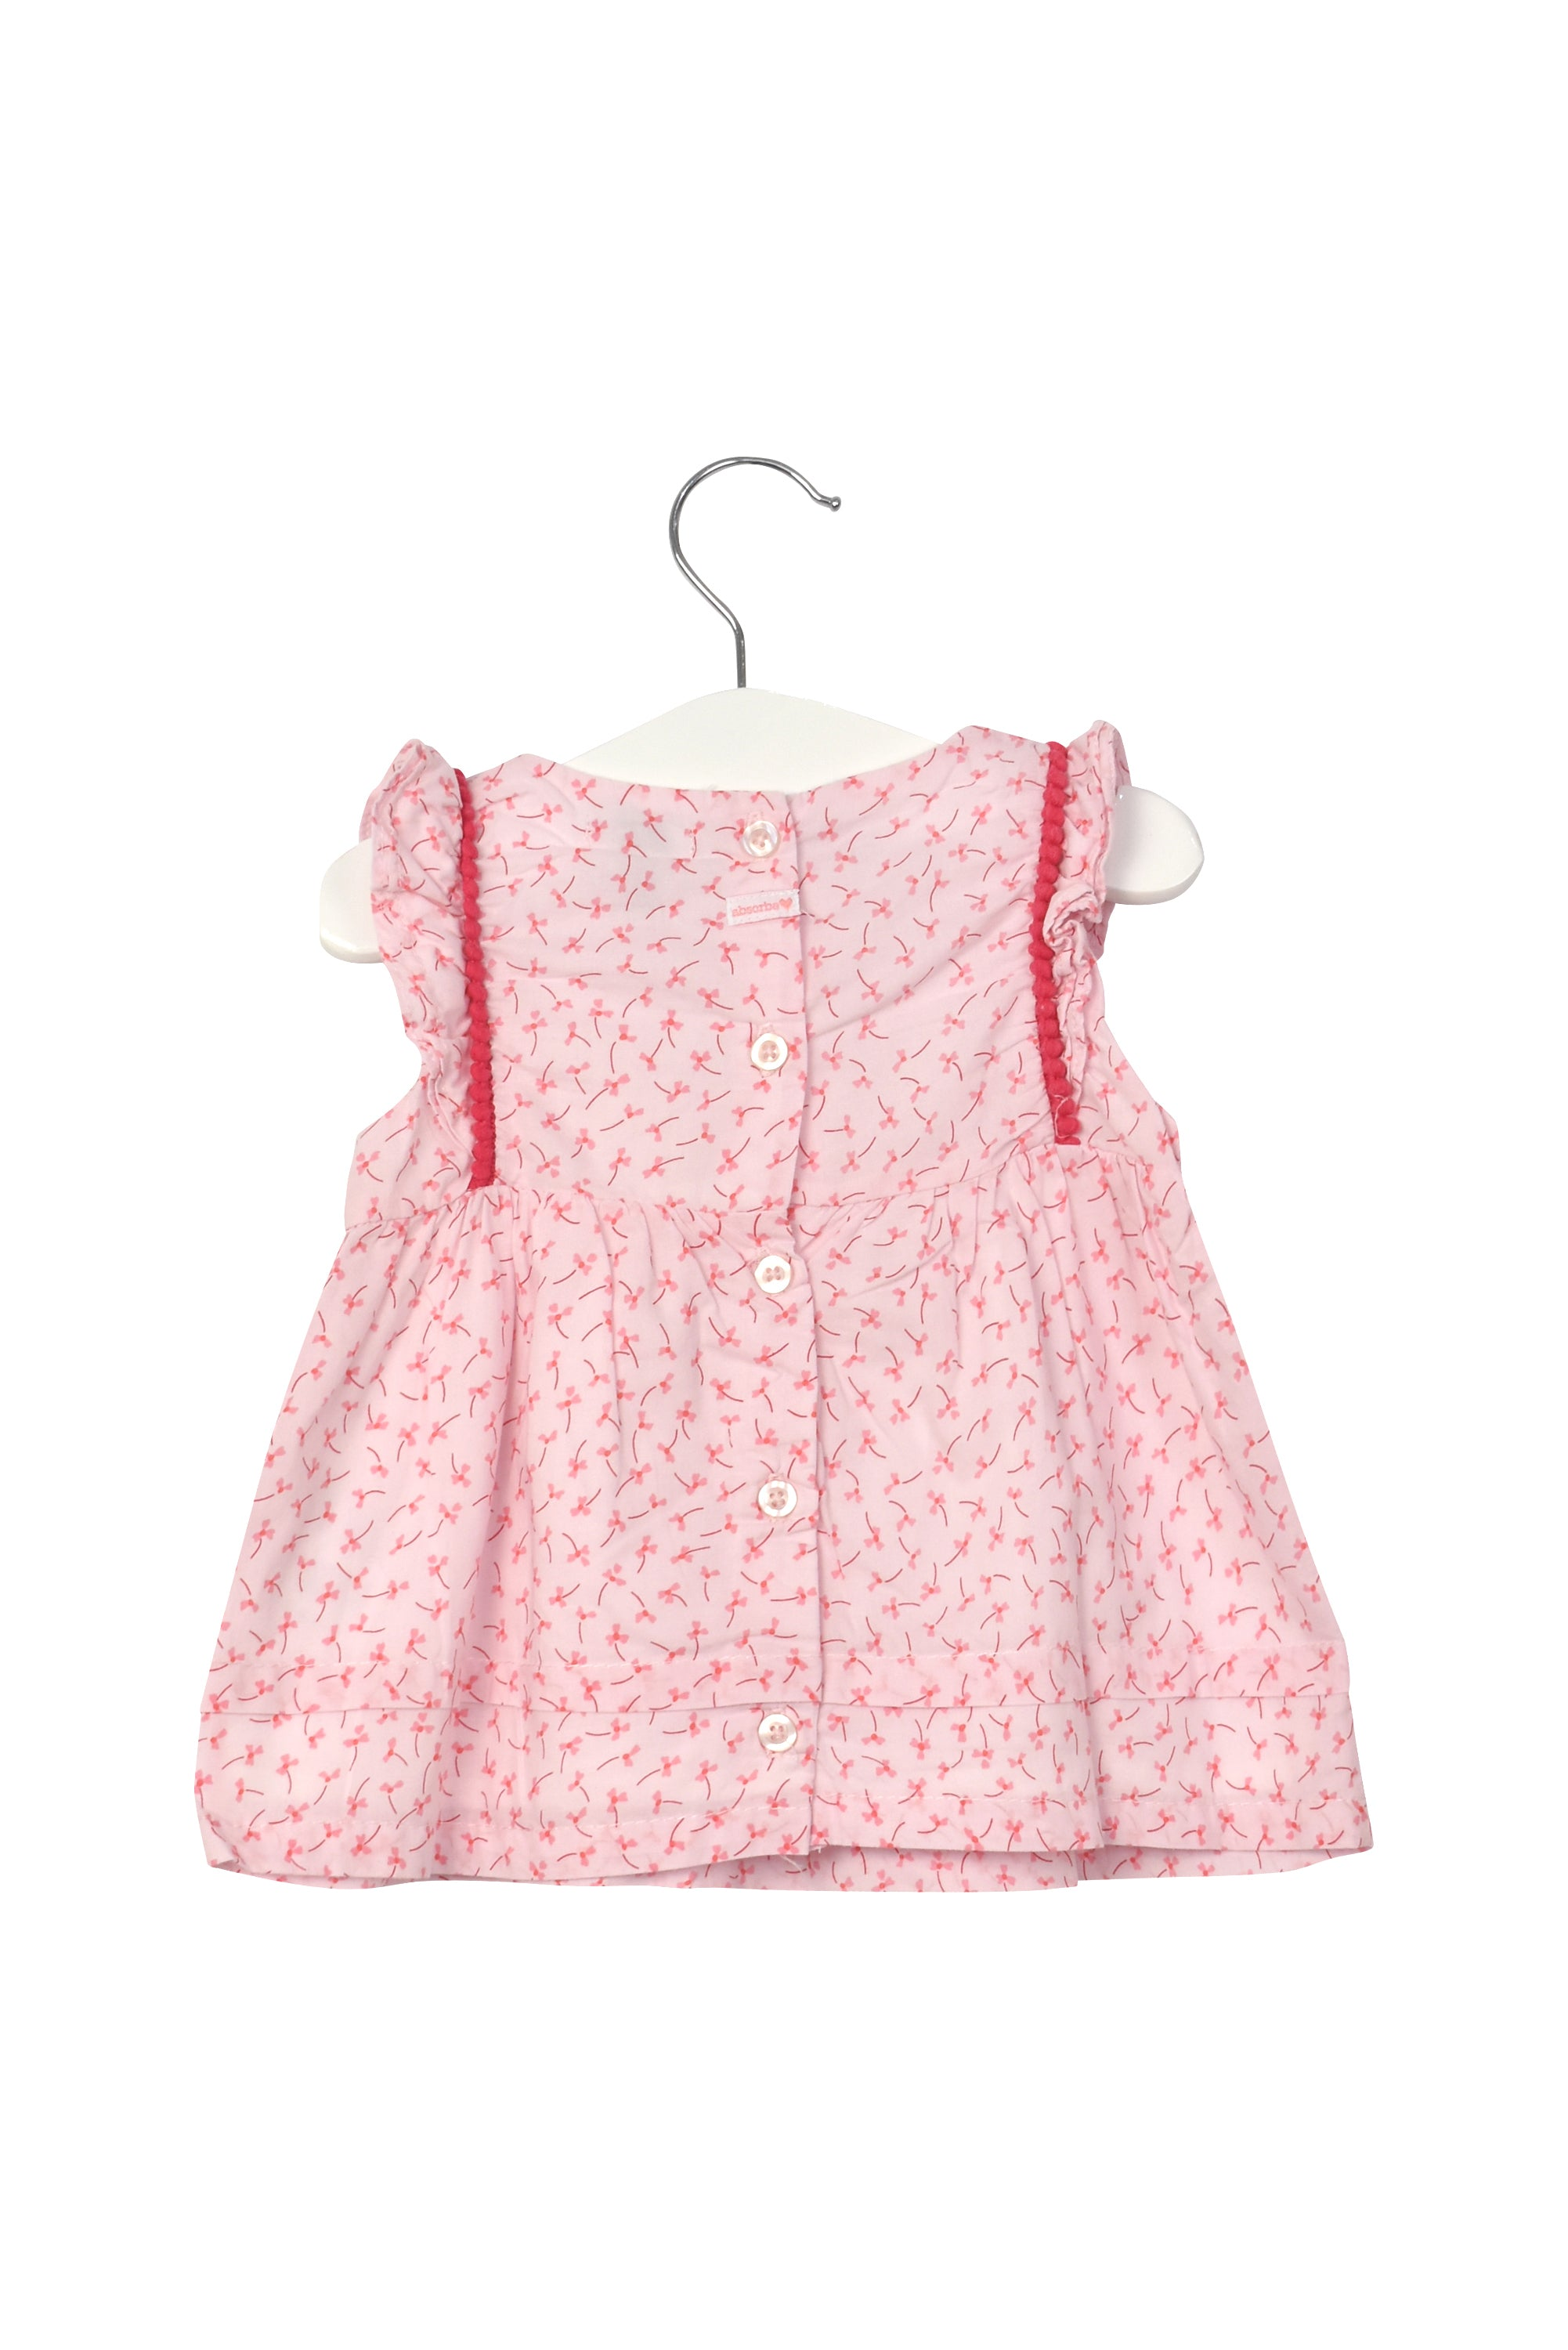 10039555 Absorba Baby~Dress and Bloomer Set 6-9M at Retykle